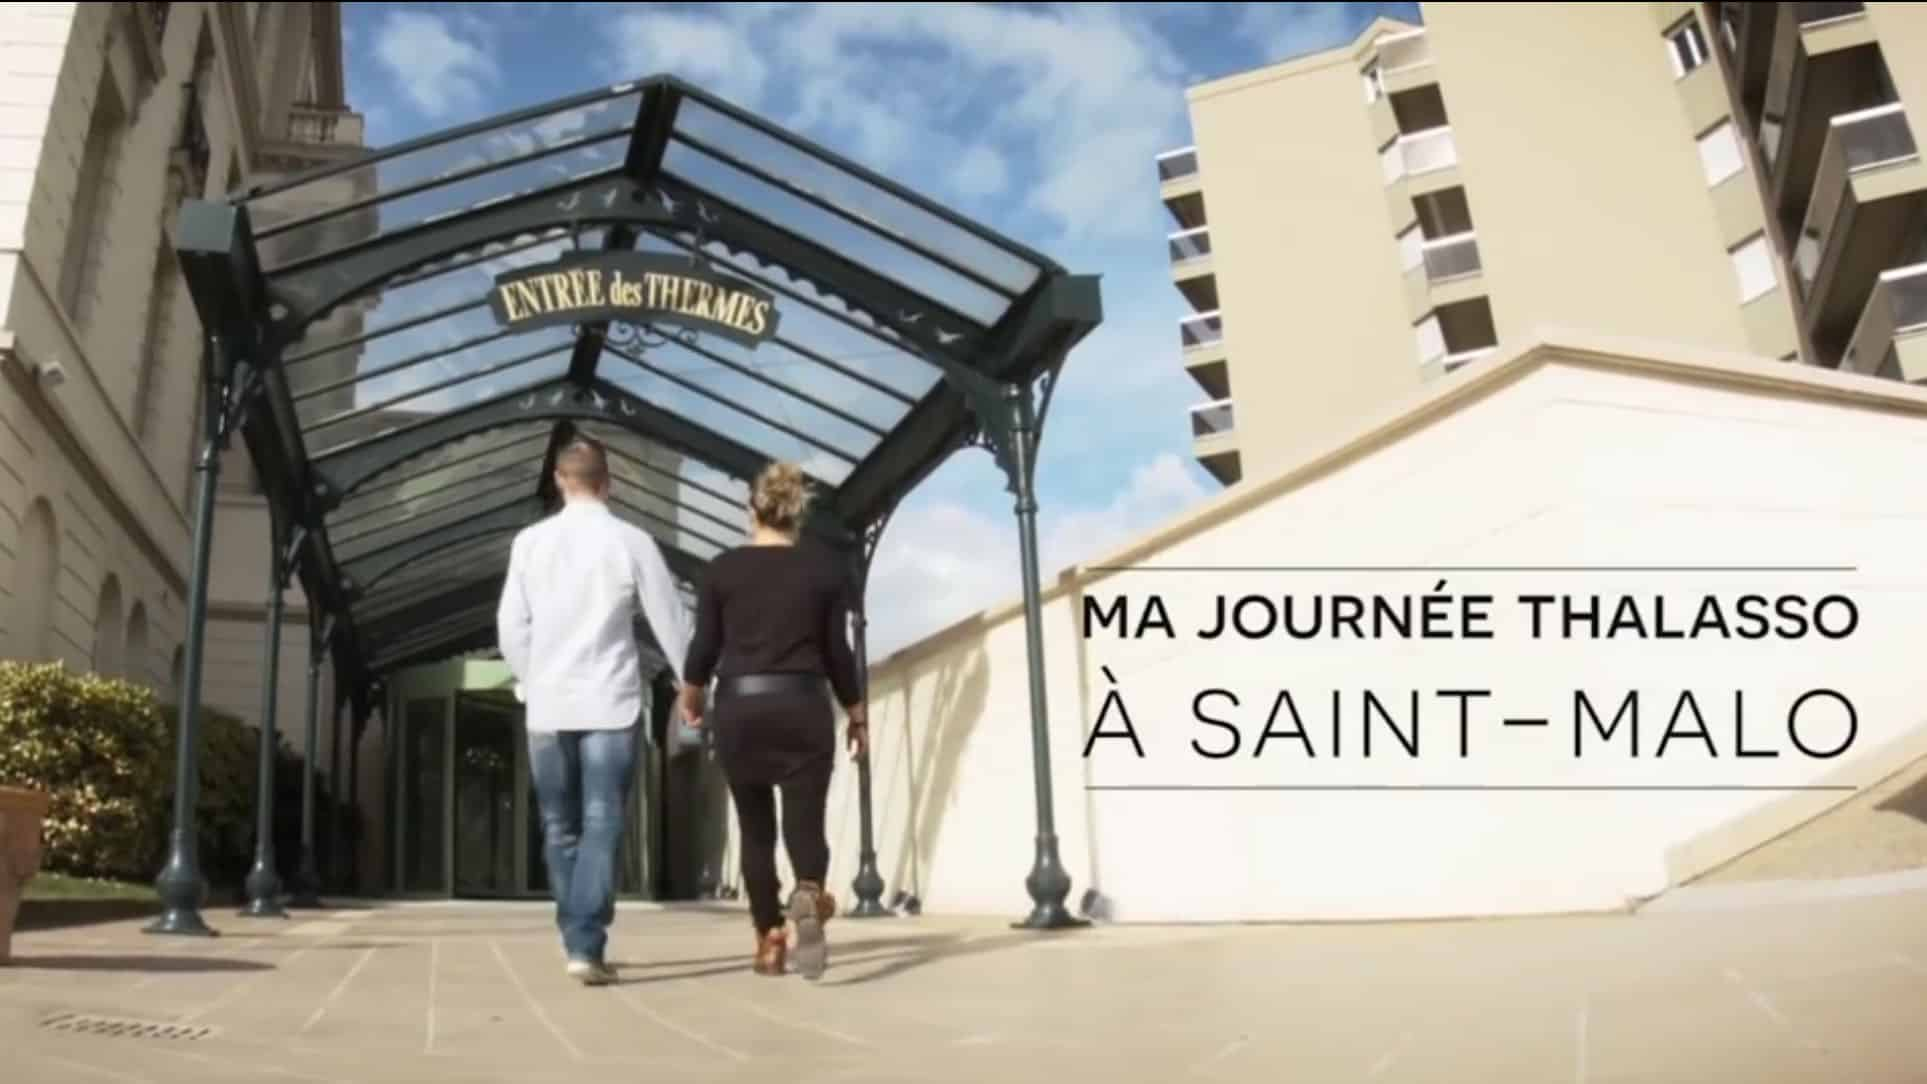 Journée thalasso à Saint-Malo en Video